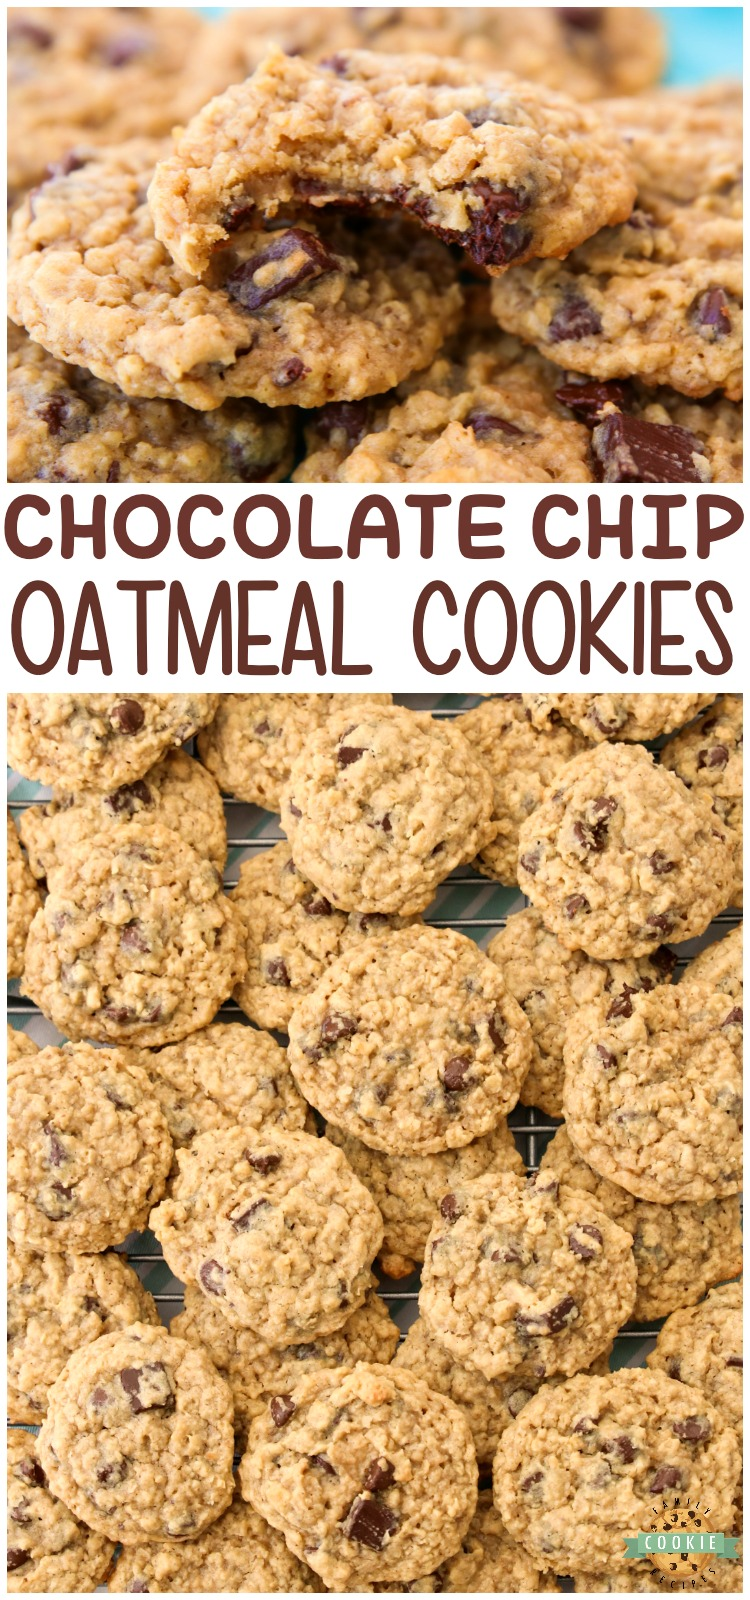 Chocolate Chip Oatmeal Cookies made with classic ingredients for the perfect soft & chewy oatmeal cookie! Amazing homemade cookie recipe you have to try! #cookies #oatmeal #chocolatechip #baking #dessert #recipe from FAMILY COOKIE RECIPES